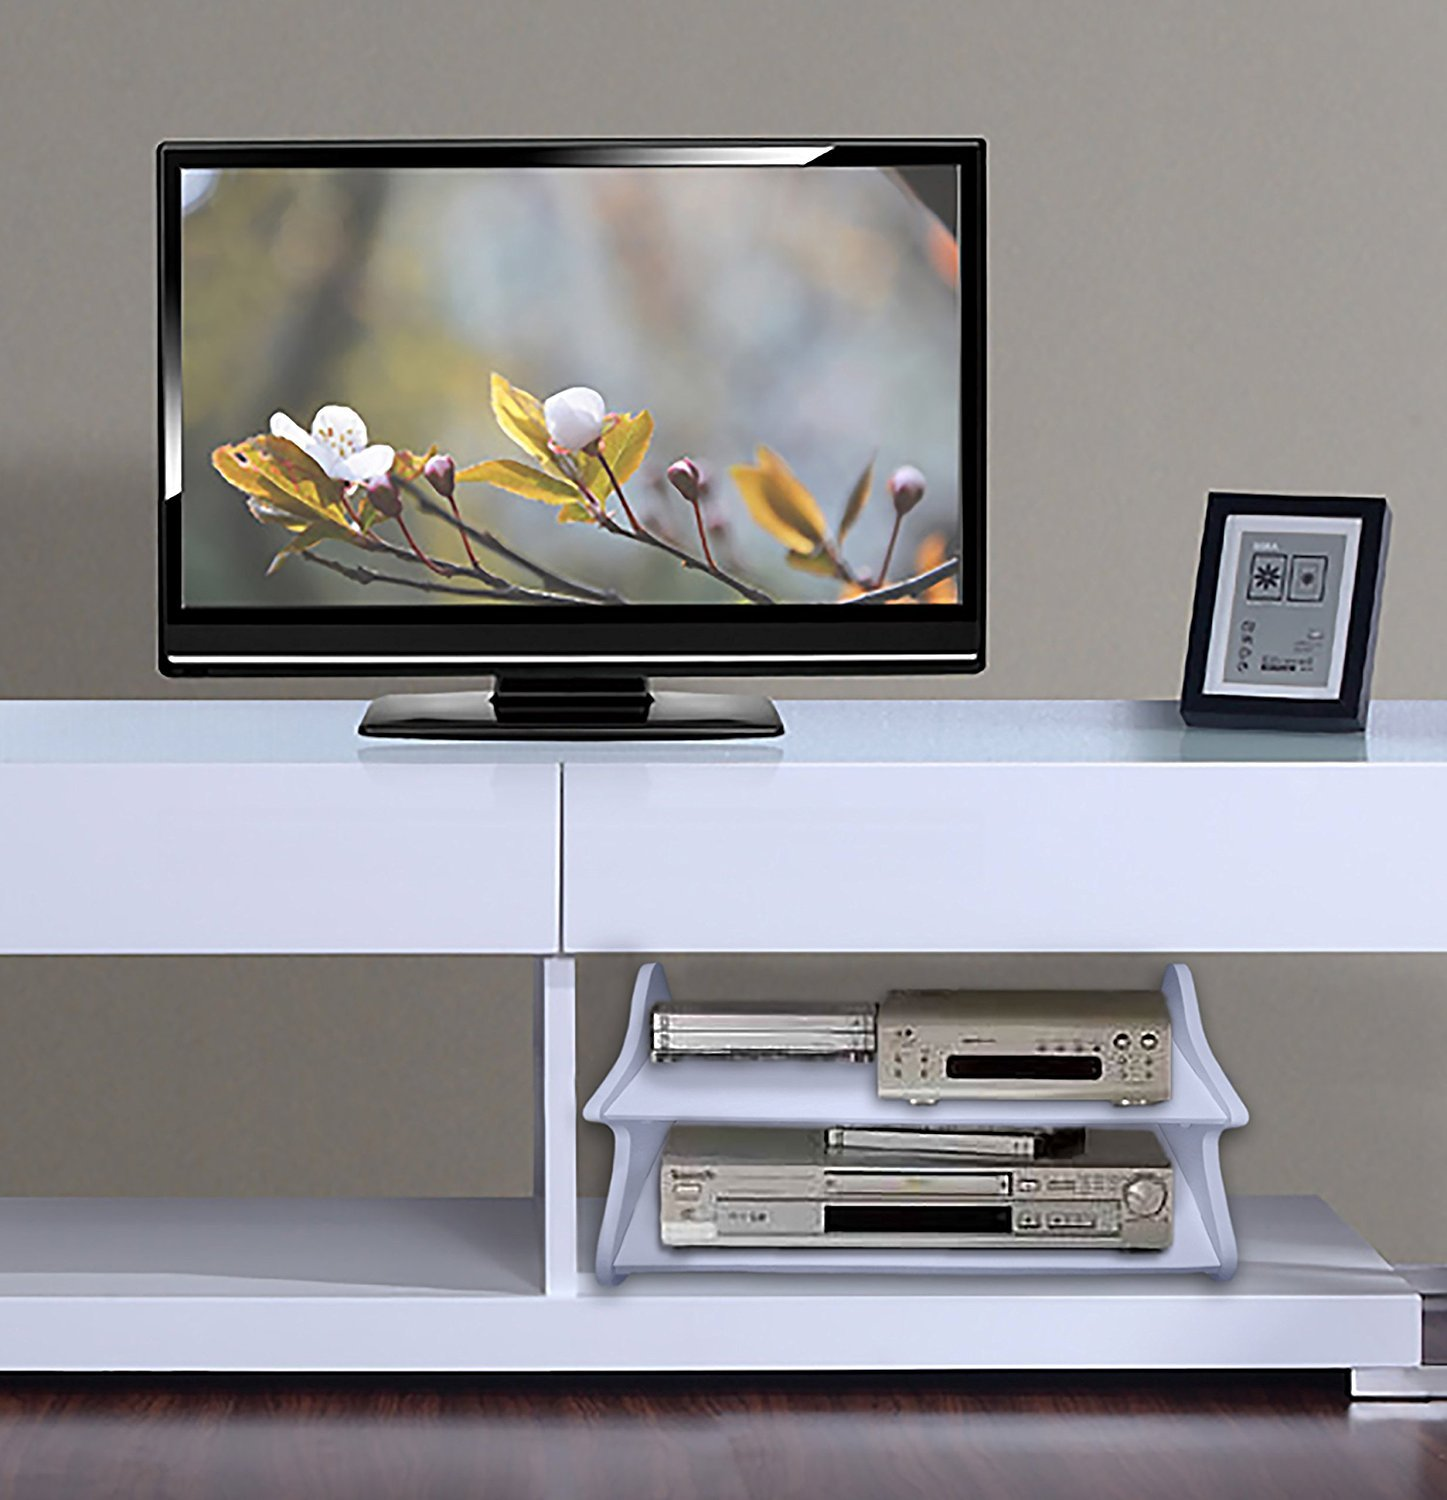 Amazon.com: Floating Wall shelf 2 tier with holes for wiring for DVD ...